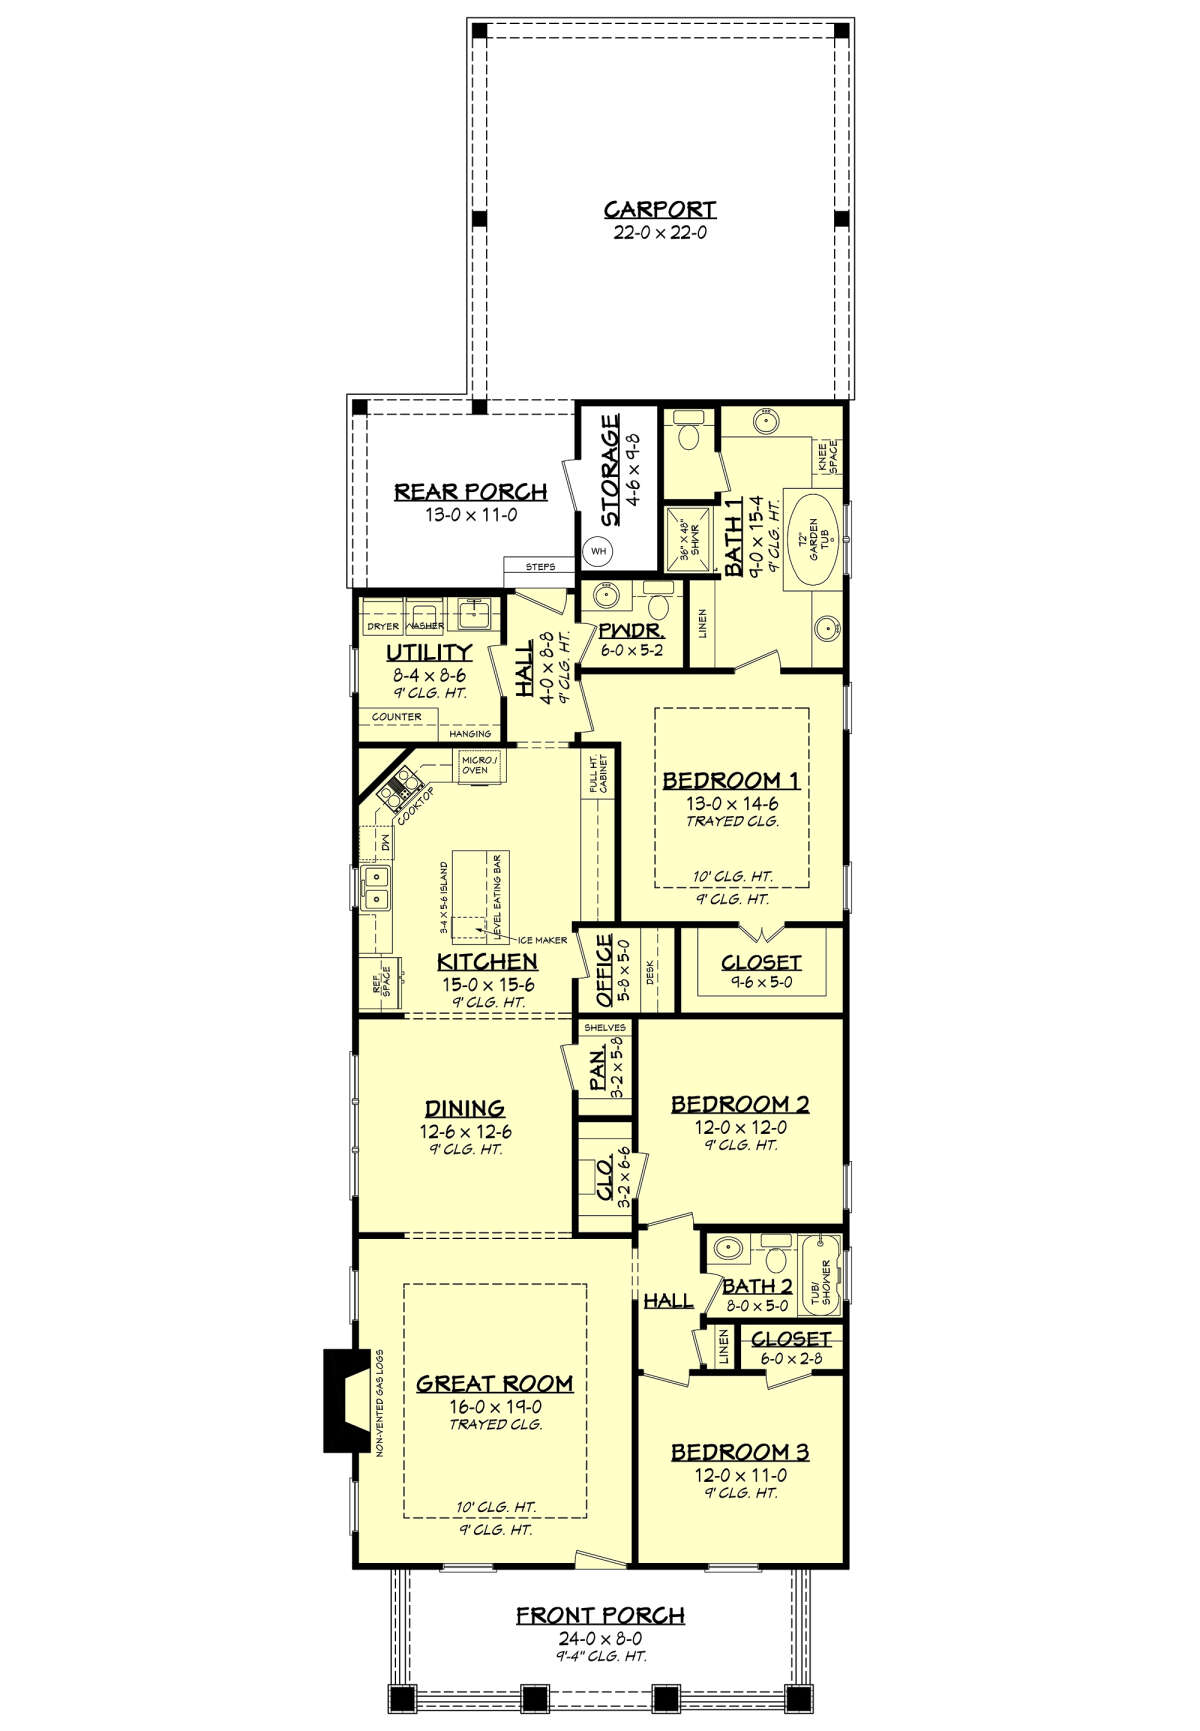 House Plan 041-00078 - Narrow Lot Plan: 1,800 Square Feet, 3 Bedrooms, on